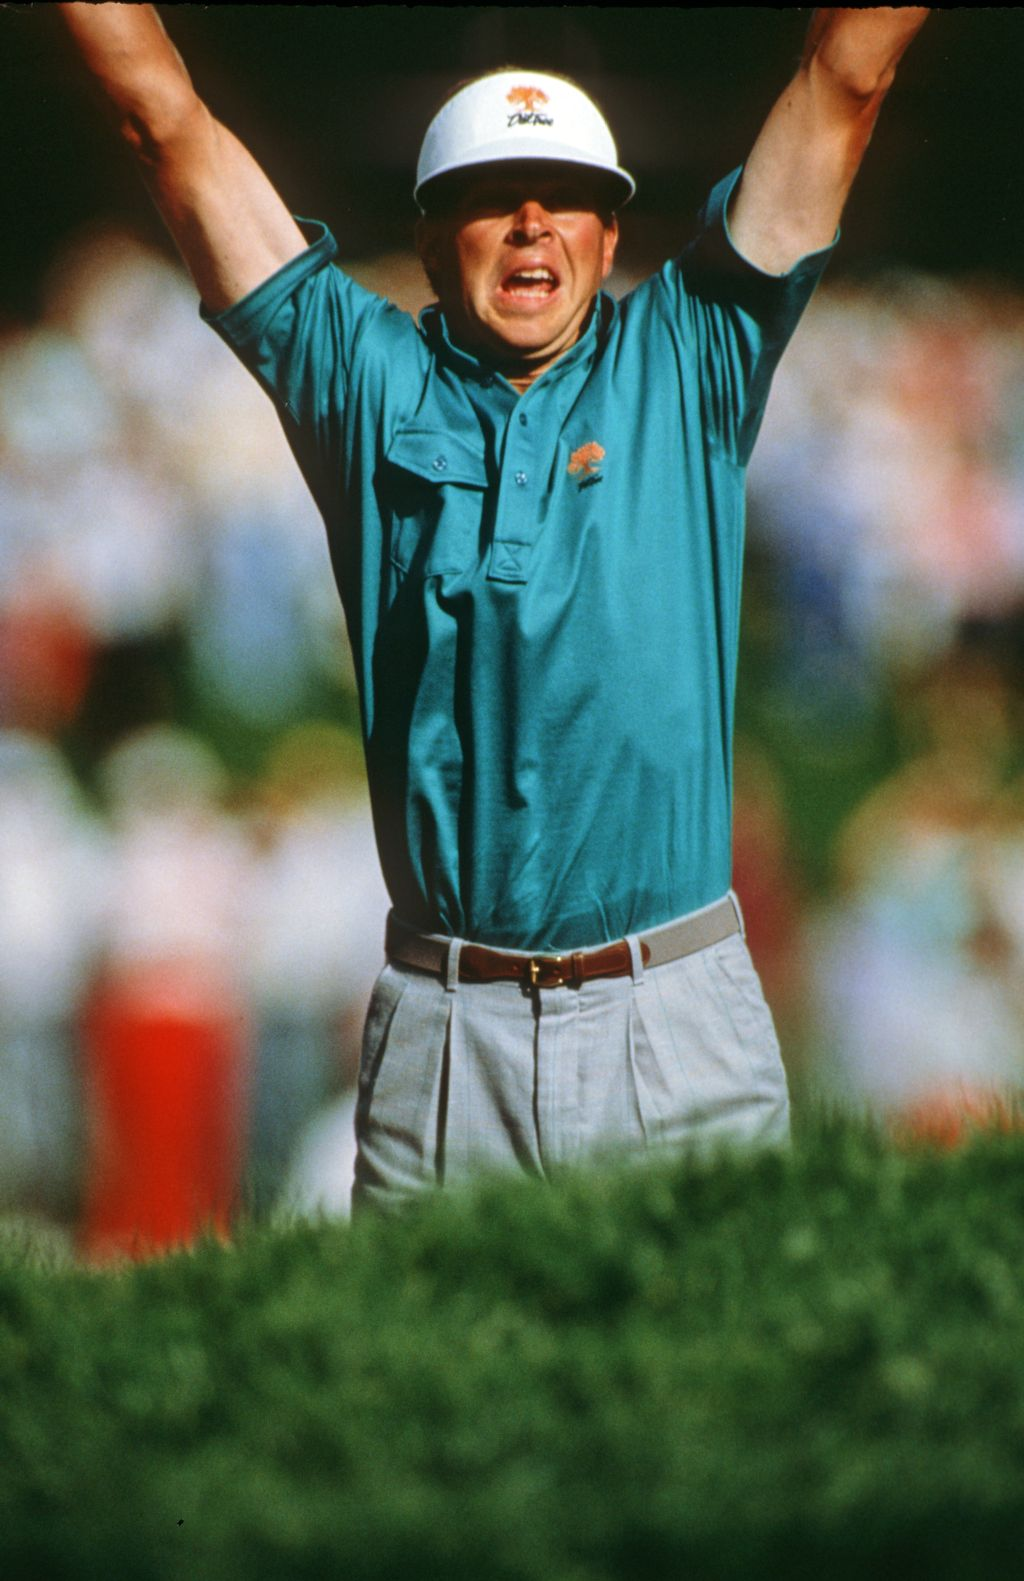 A jubilant Bob Tway leaps into the air as he holes his bunker shot on the 18th green to win the 1986 USPGA